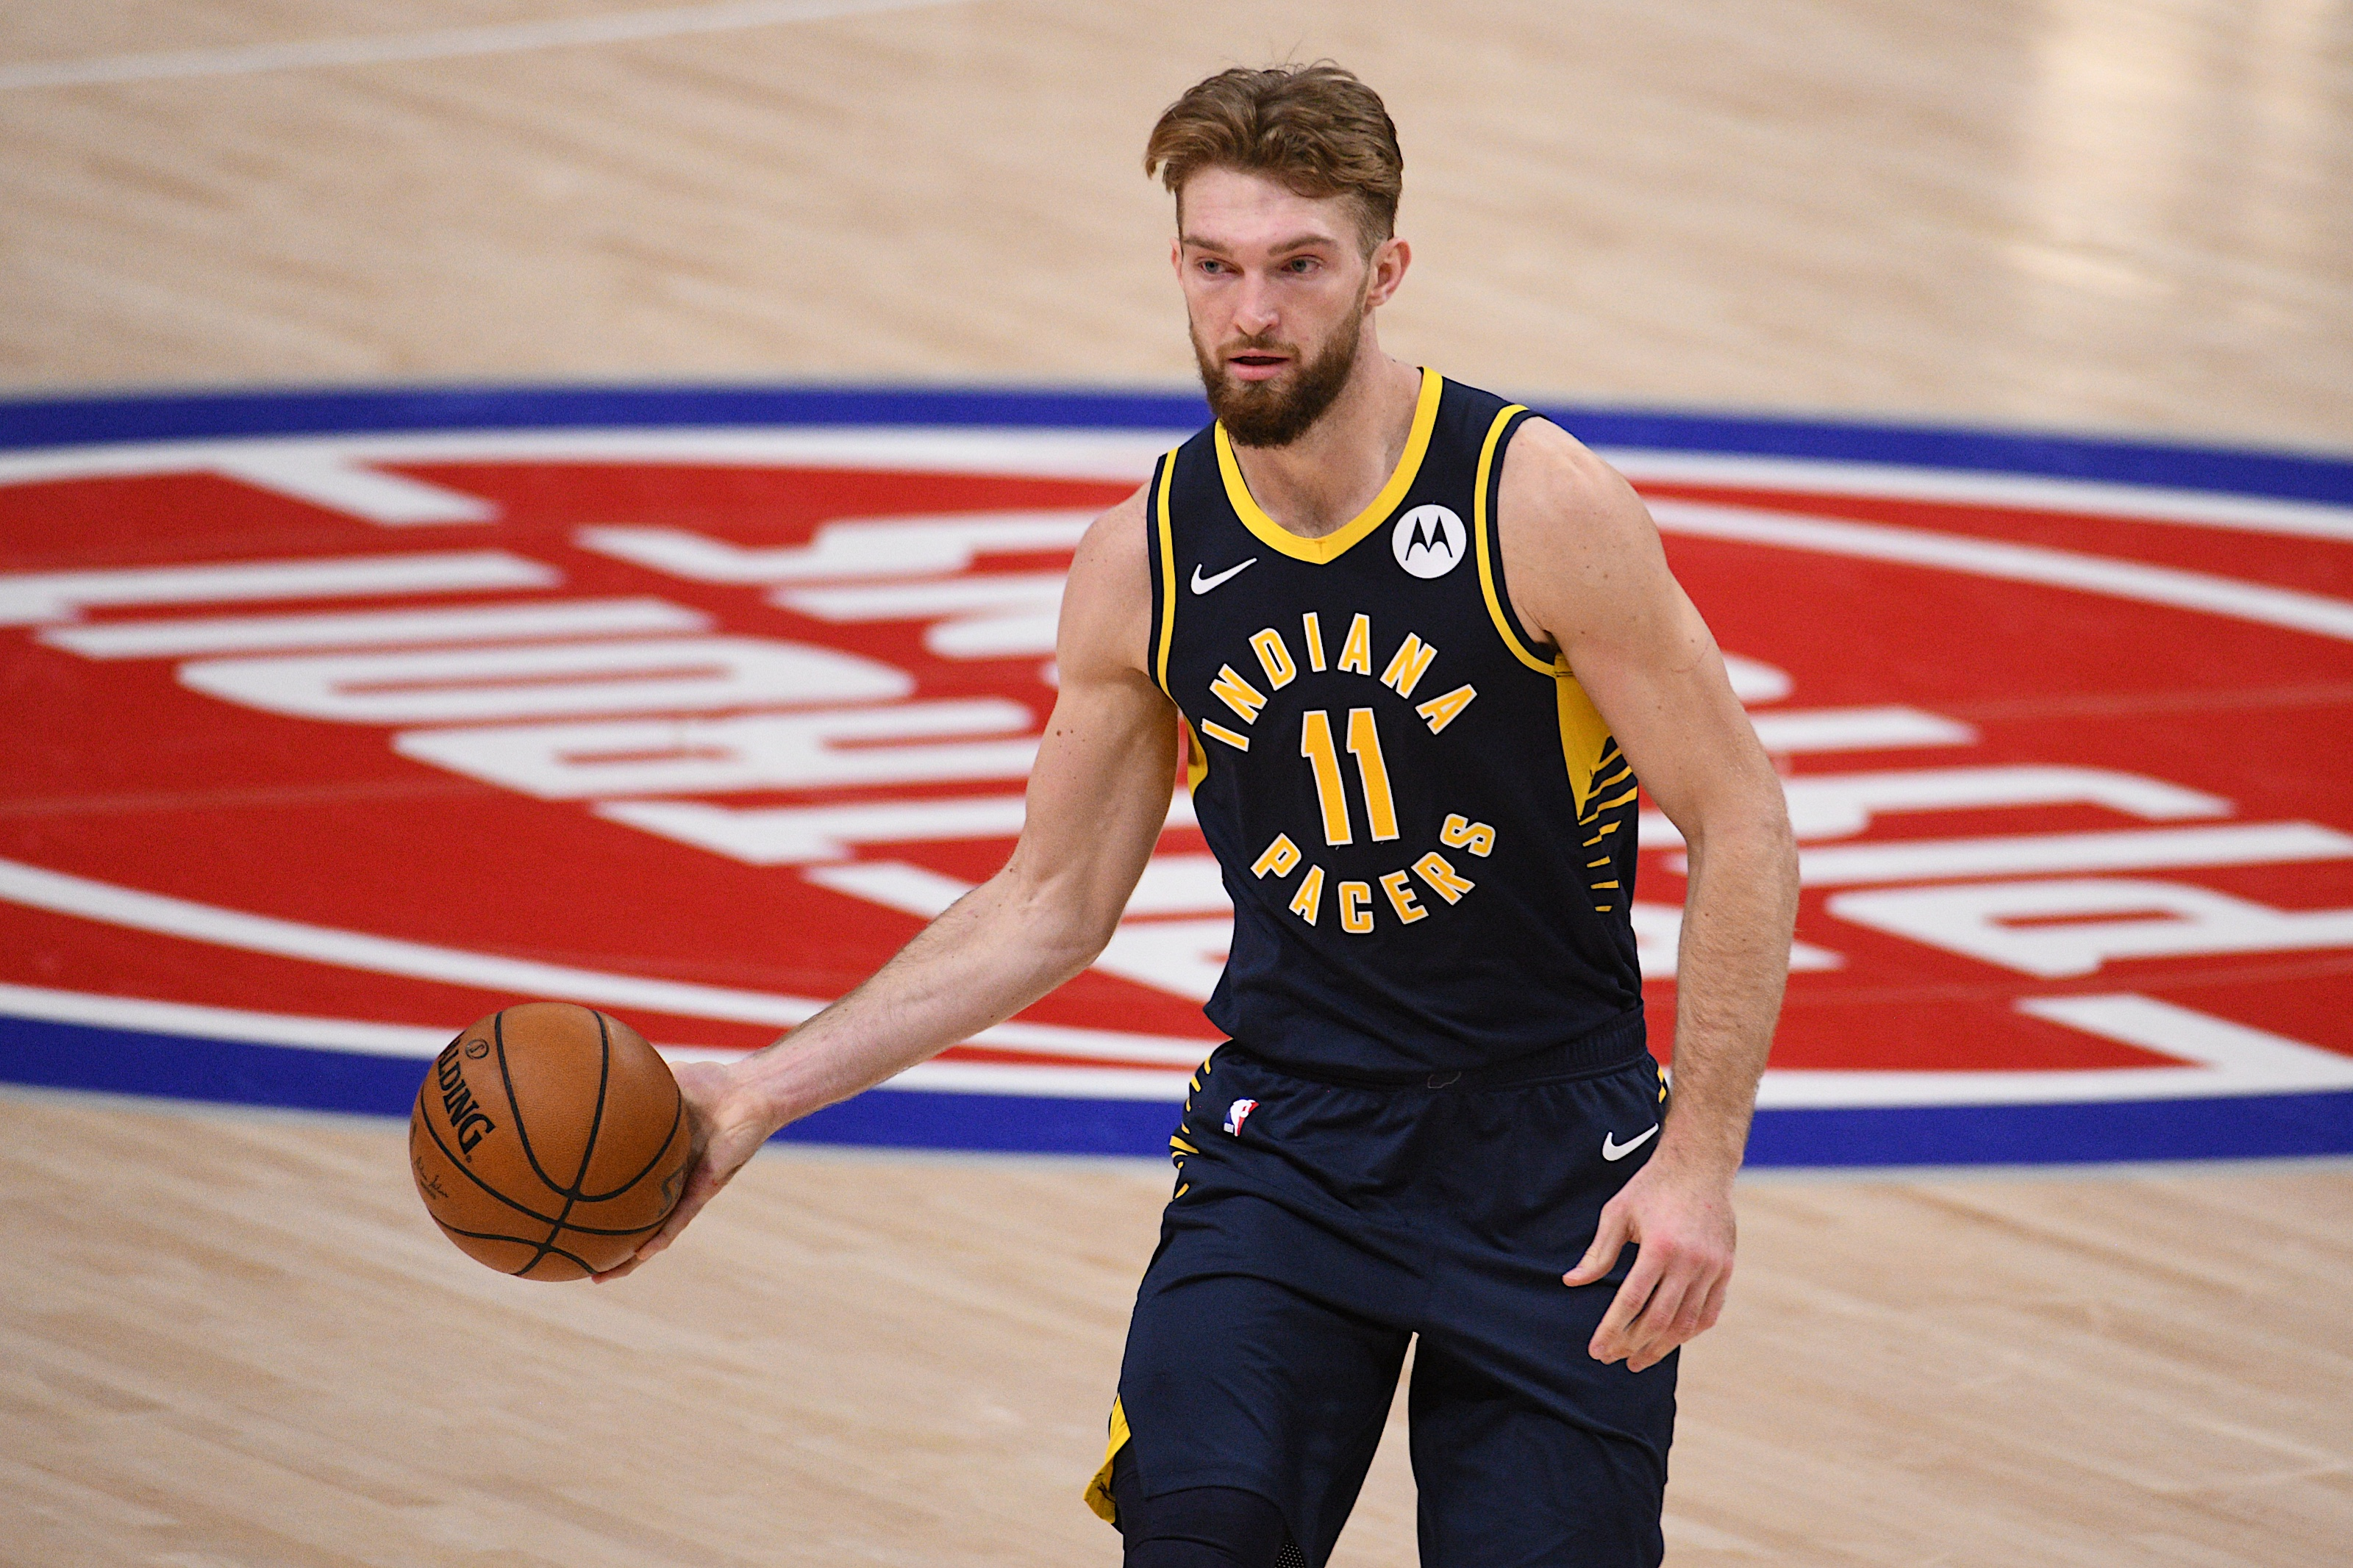 Feb 11, 2021; Detroit, Michigan, USA; Indiana Pacers forward Domantas Sabonis (11) controls the ball against the Detroit Pistons during the third quarter at Little Caesars Arena.